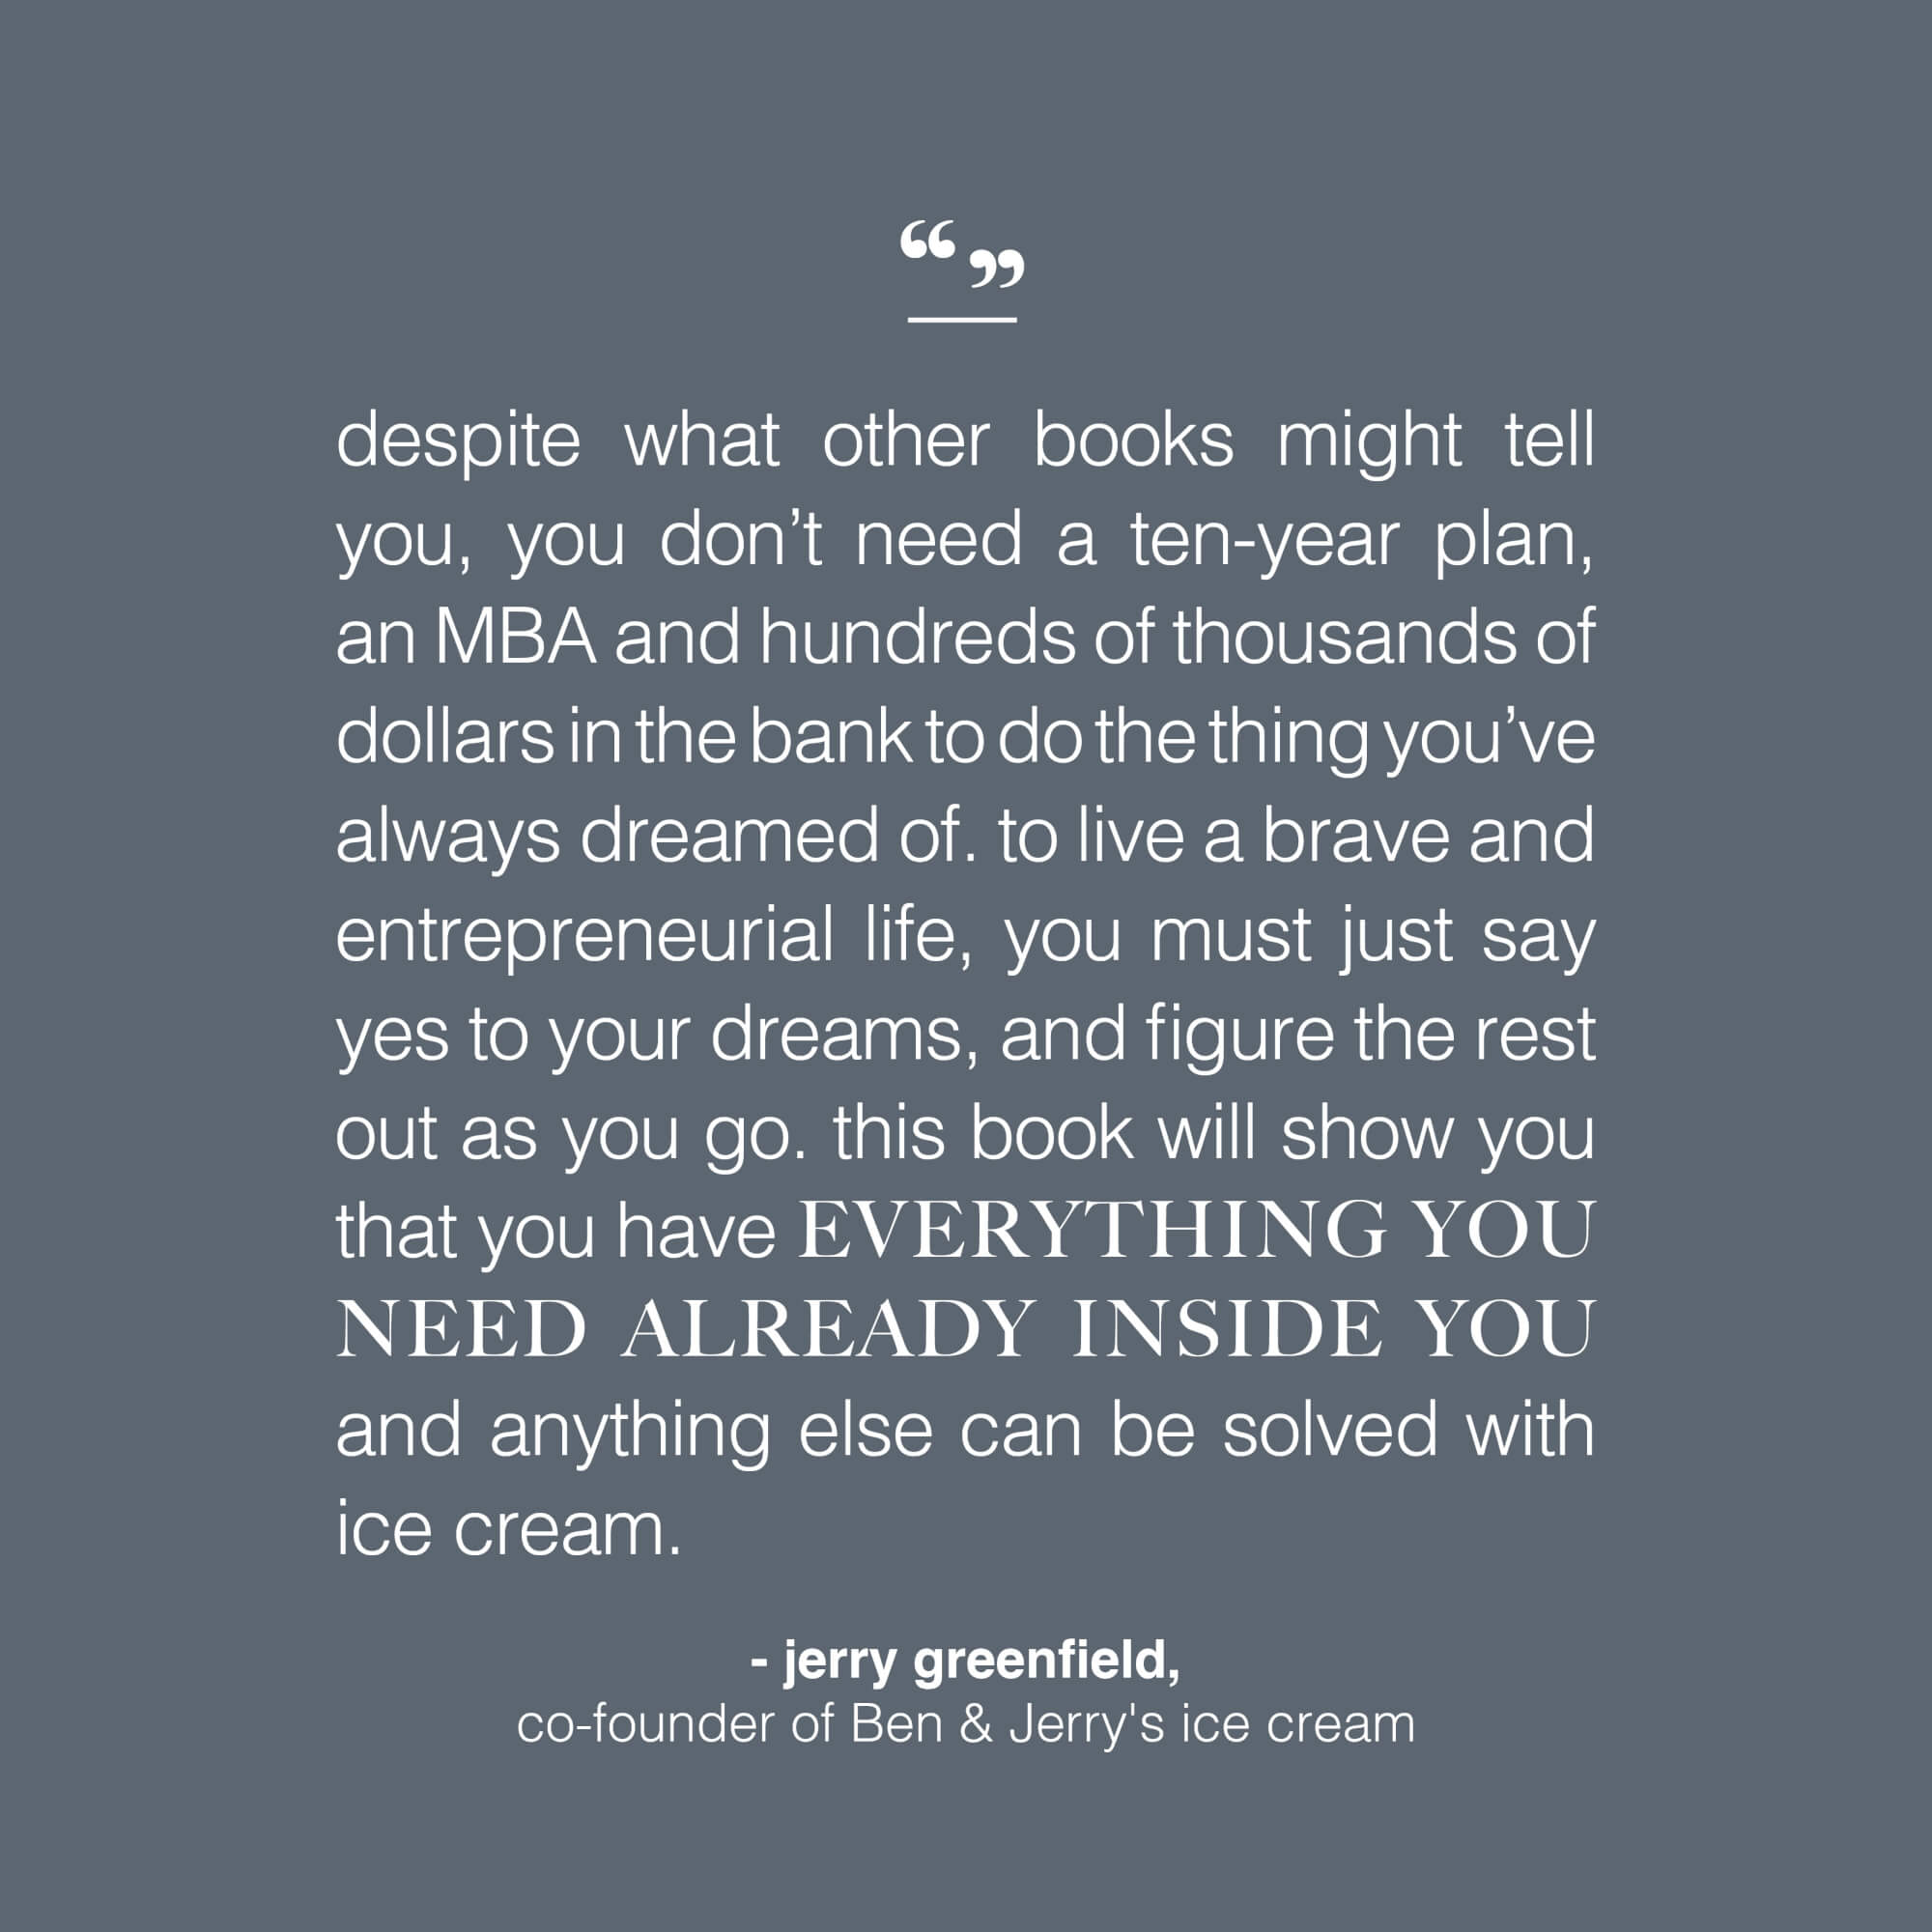 quote by jerry greenfield